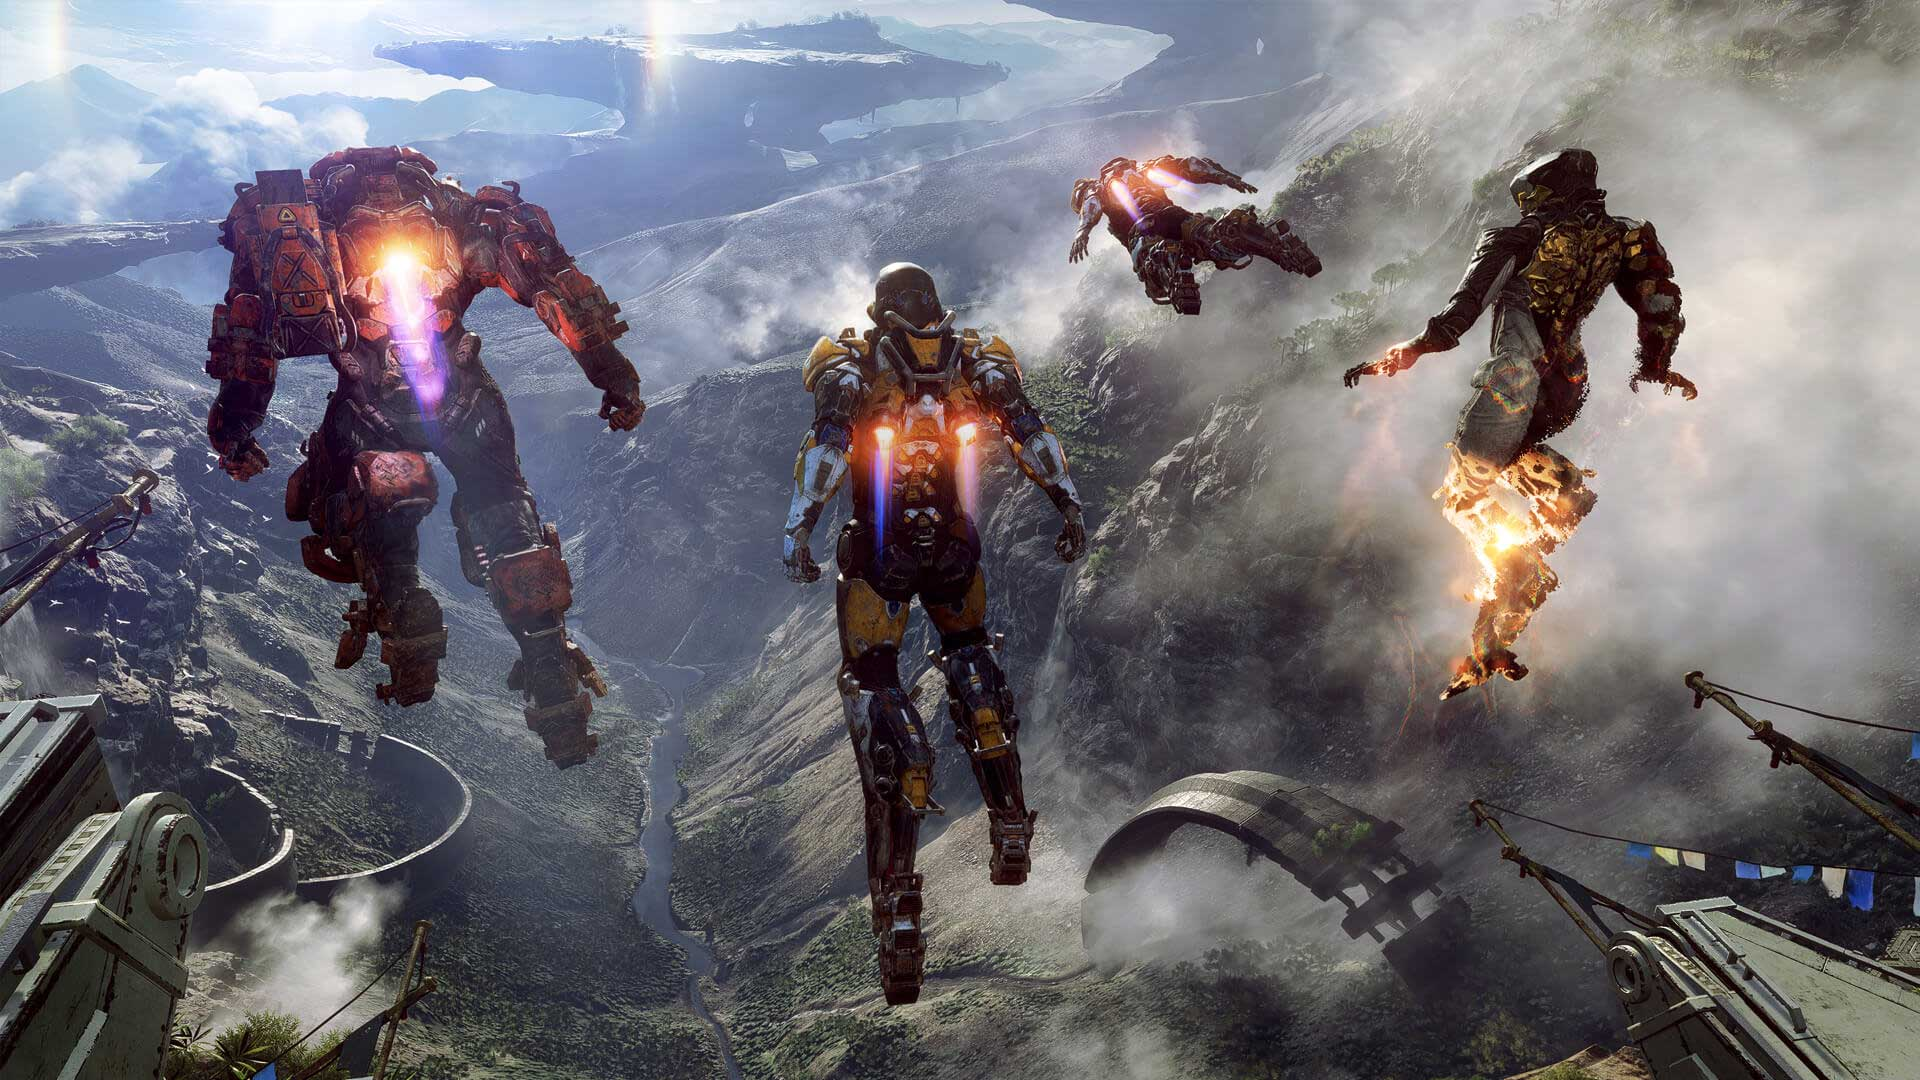 Bioware's Anthem is not an MMO, story DLC will be added